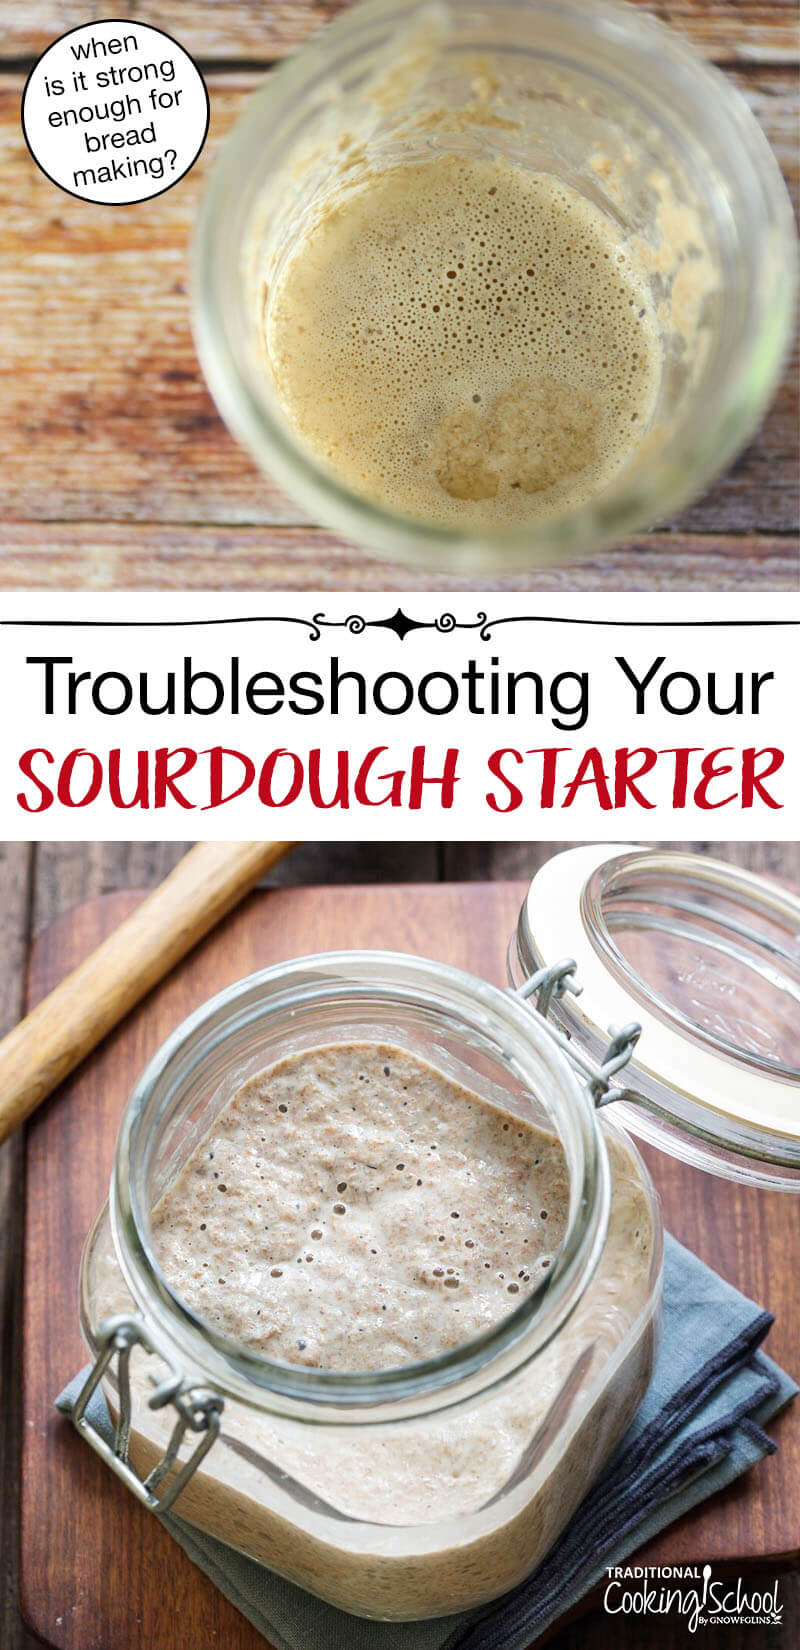 Sourdough Troubleshooting: How To Know When Your Starter Is Strong Enough For Bread-Baking | Have you tried baking sourdough bread time and time again... only to end up with small, dense, hard loaves? Maybe your starter just wasn't ready... Here are some sourdough troubleshooting tips -- and how to know when your starter is strong enough for bread-baking! | TraditionalCookingSchool.com